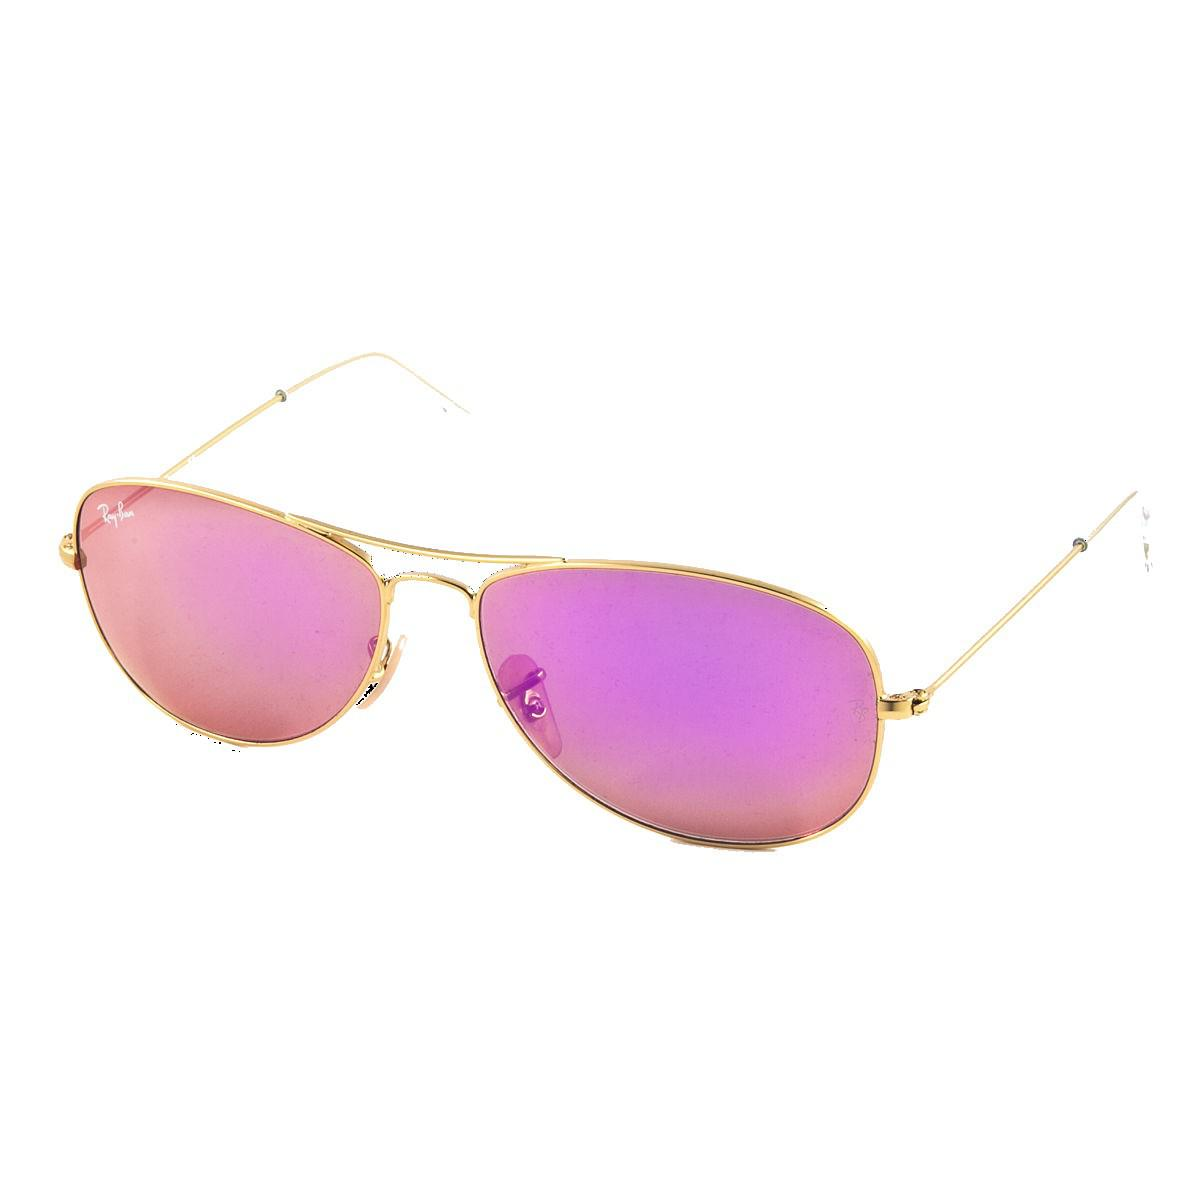 Ray Ban Cockpit RB3362 112/4T 59 matte gold / cyclamen mirror 4ydrA